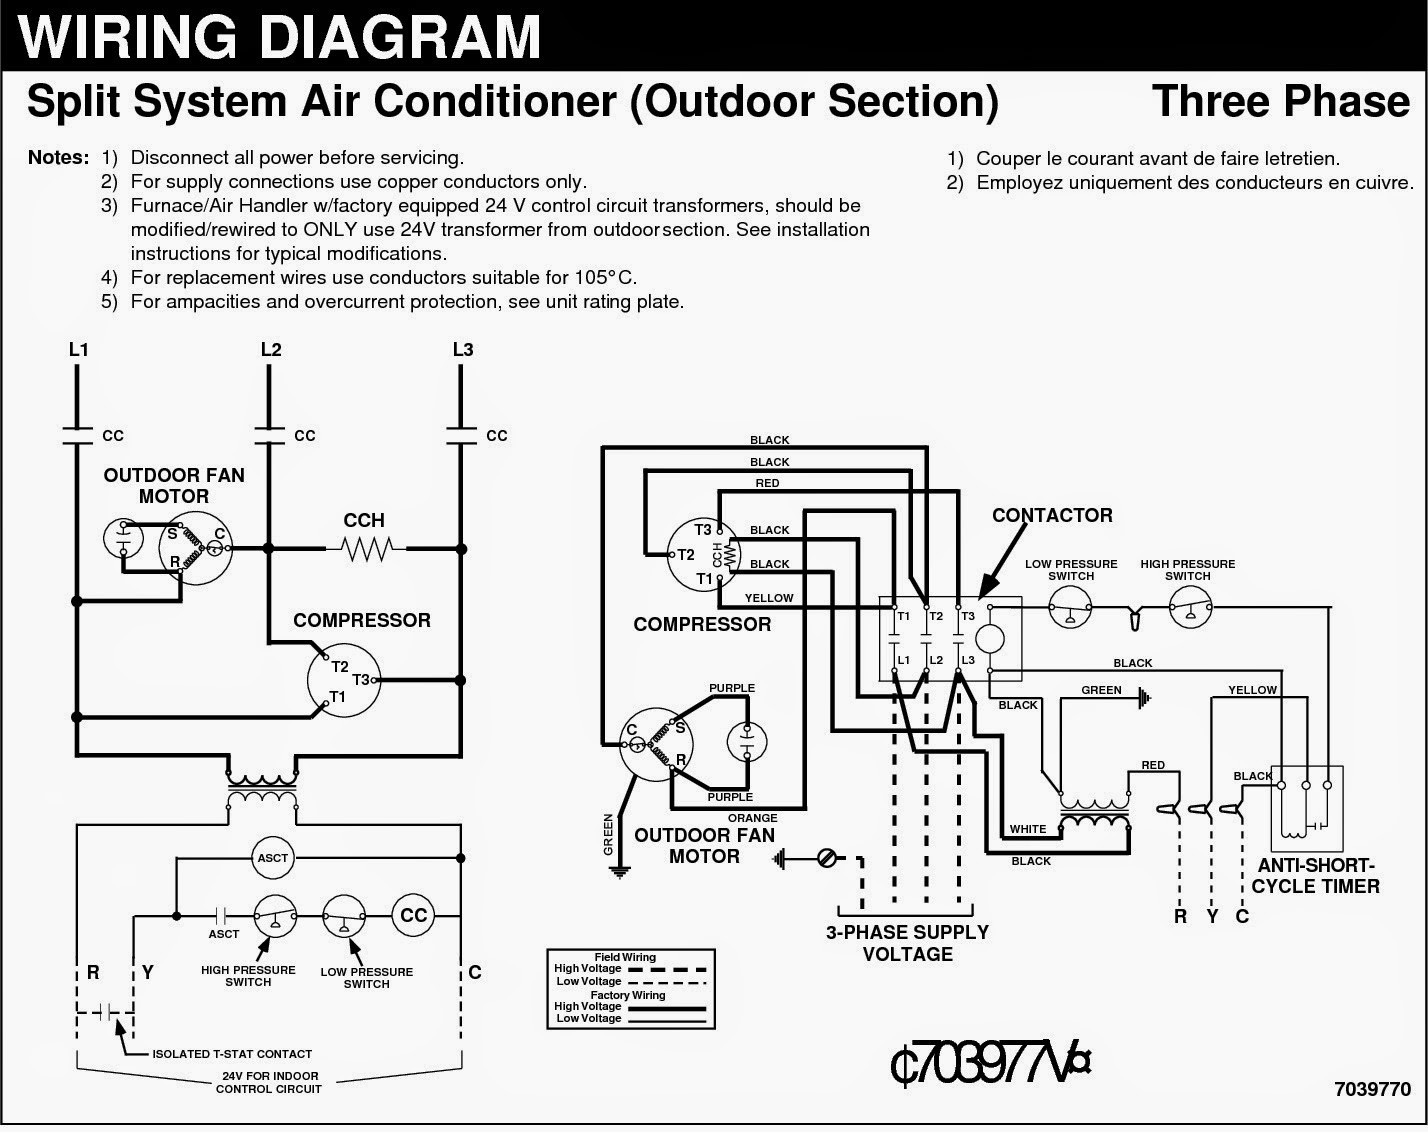 Three Phase Plug Wiring Diagram 1995 Toyota Camry Package Ac Data Schema Air Conditioning All Auto